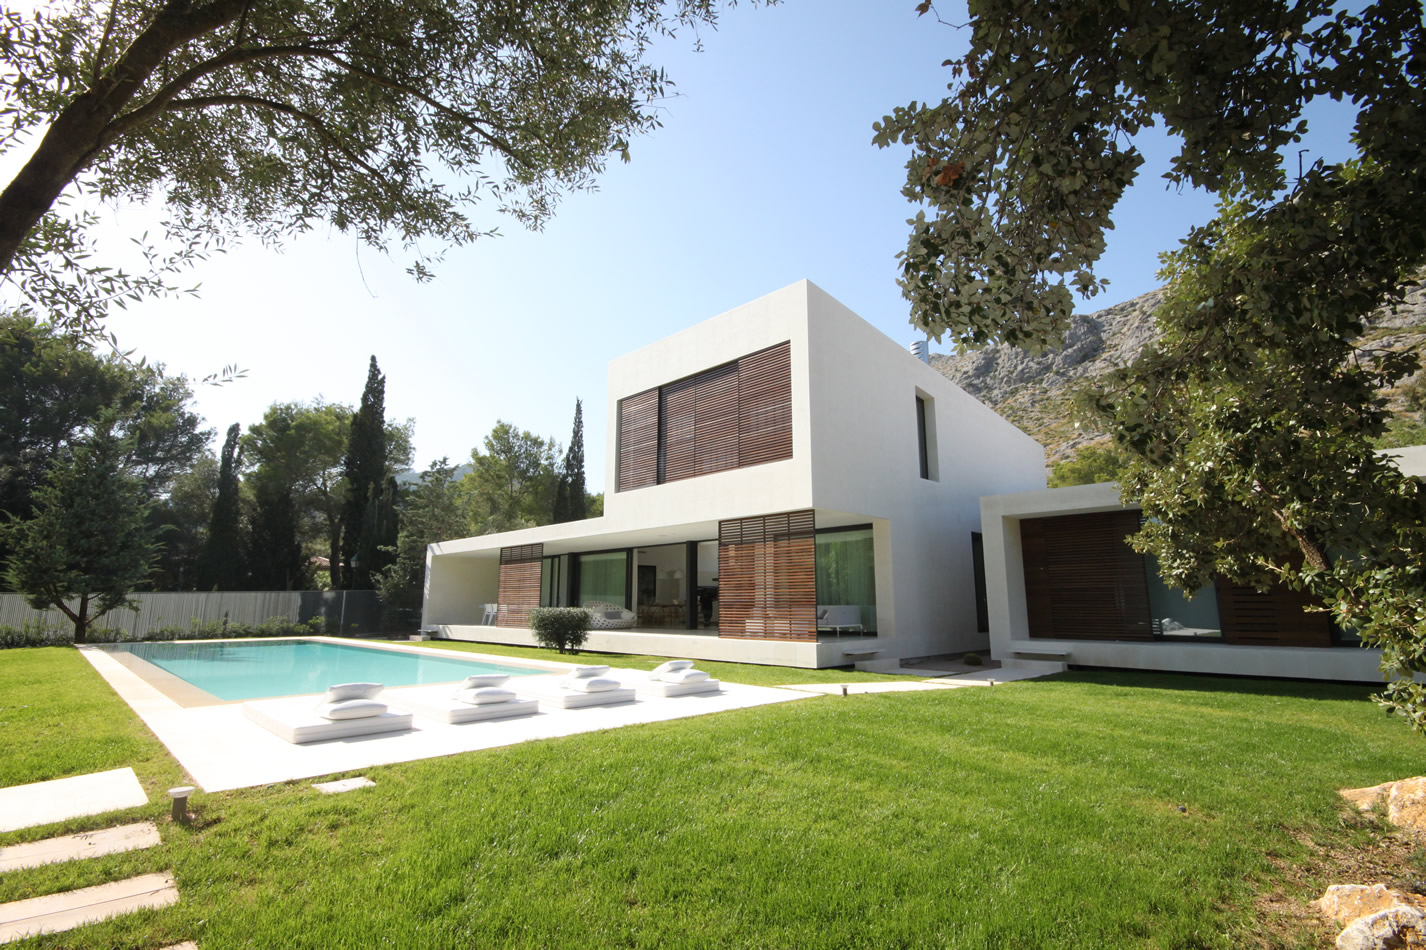 Mallorca Villas Trends Tips And Best Advice When Buying